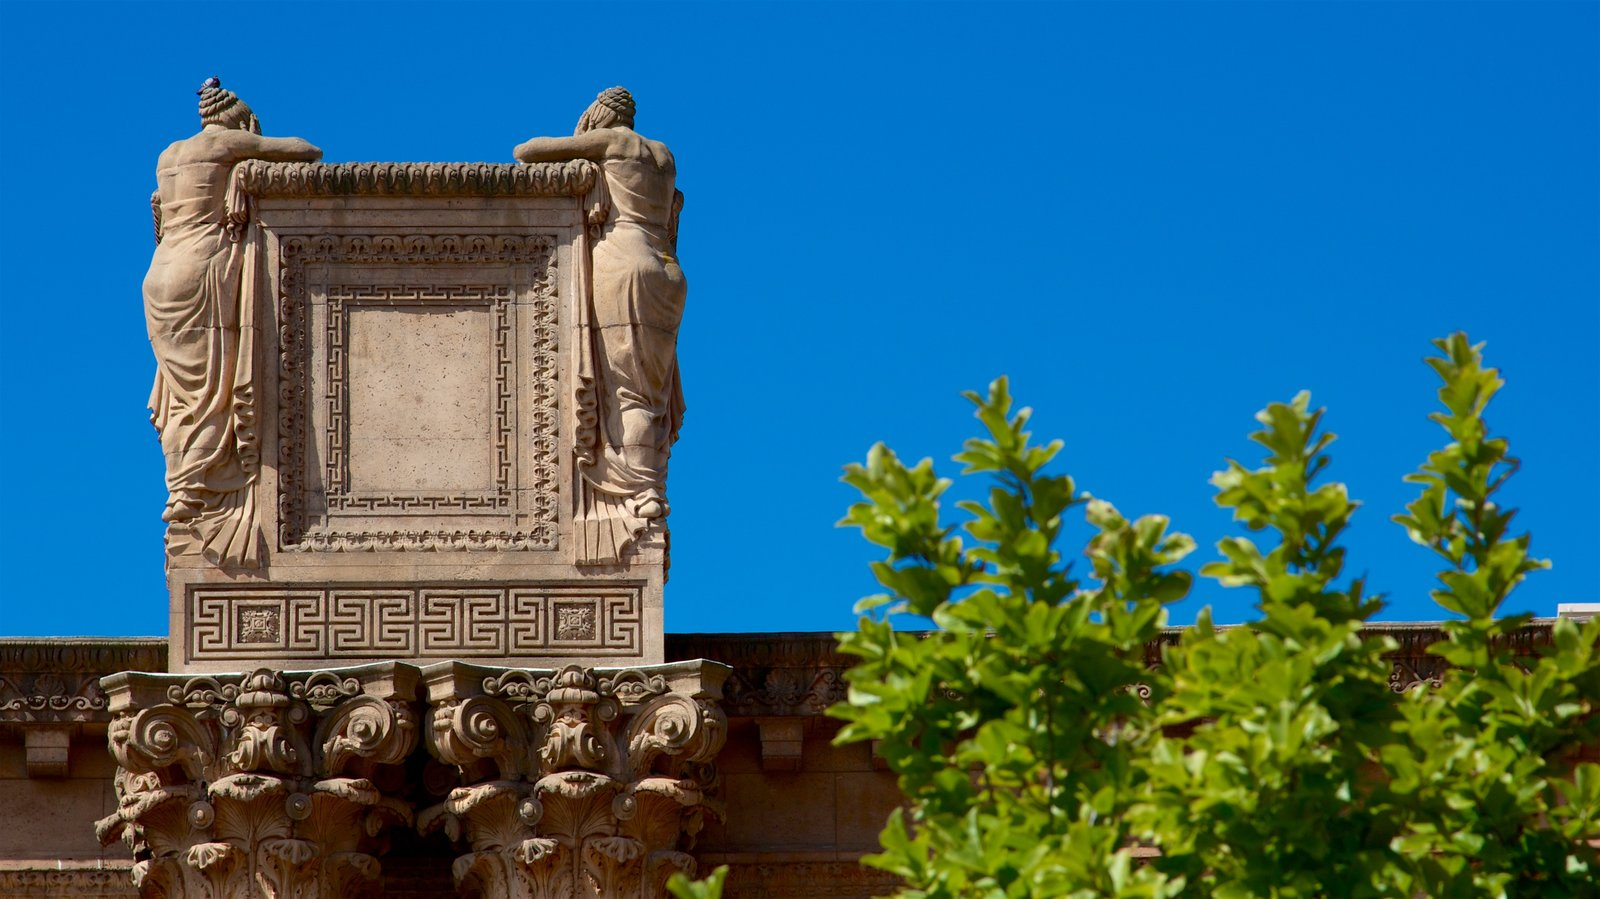 Palace of Fine Arts featuring heritage elements